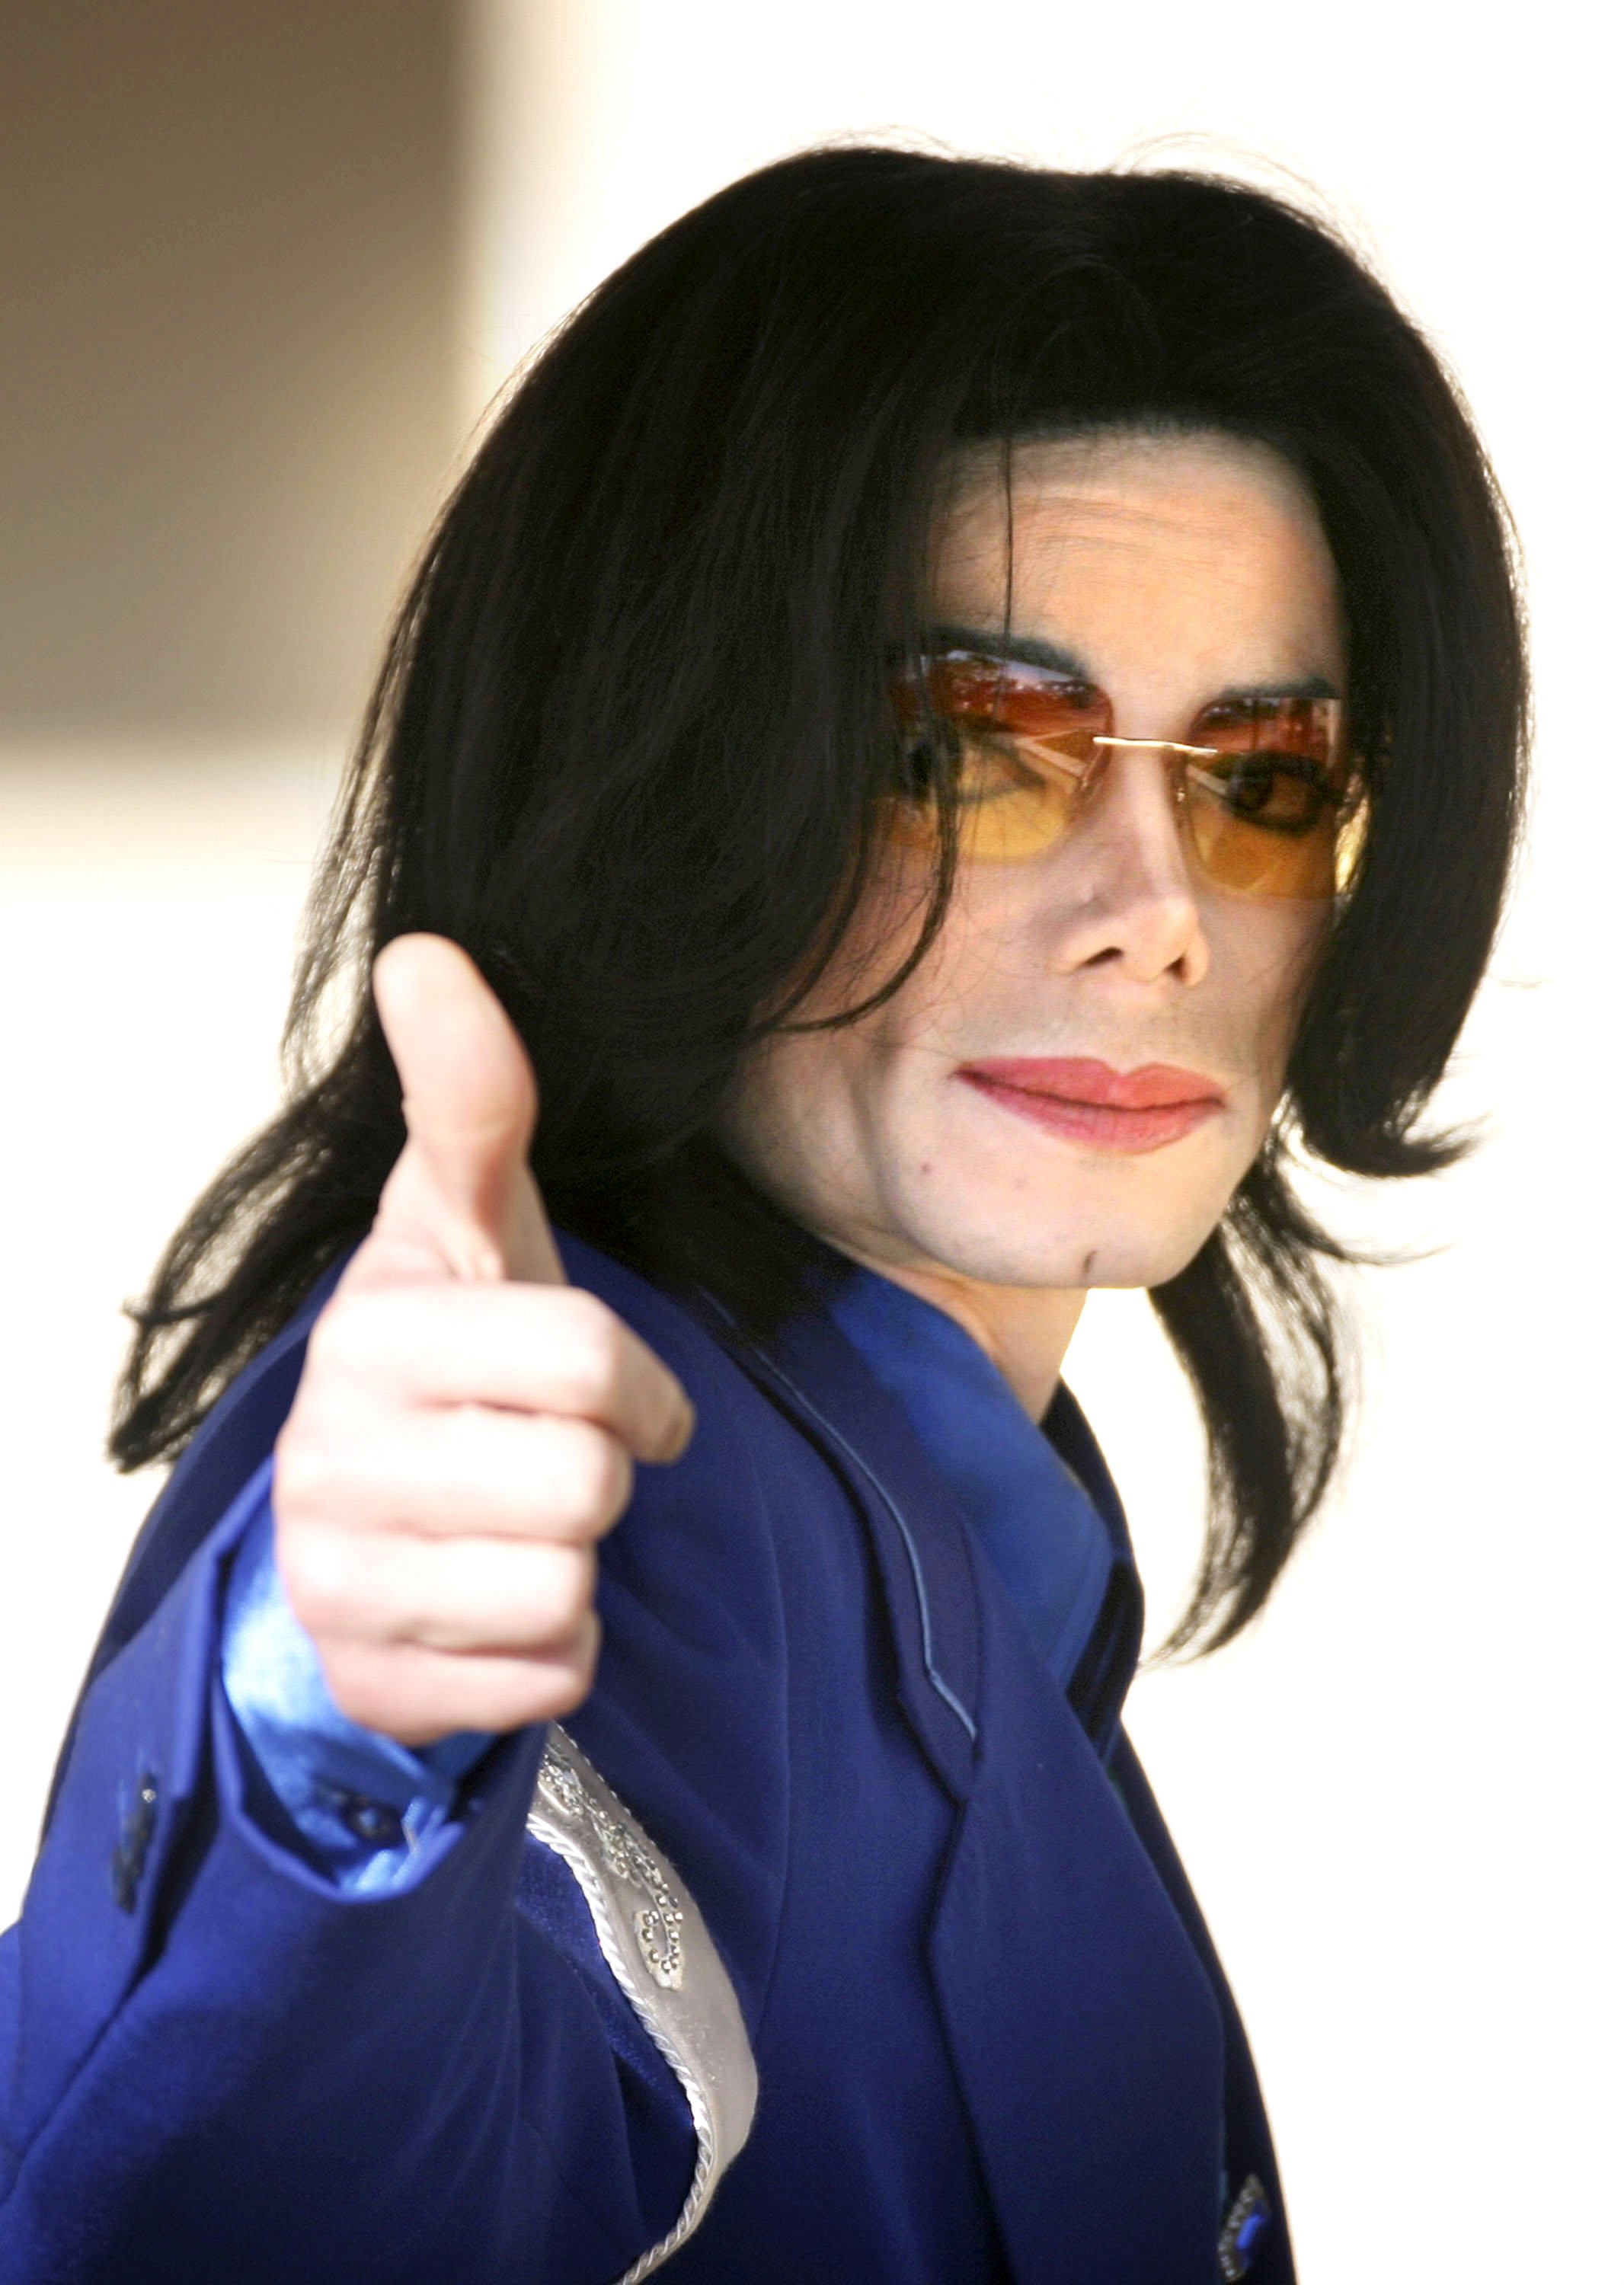 Michael Jackson at the Santa Barbara County Courthouse for his child molestation trial on March 16, 2005 in California. | Photo: Getty Images